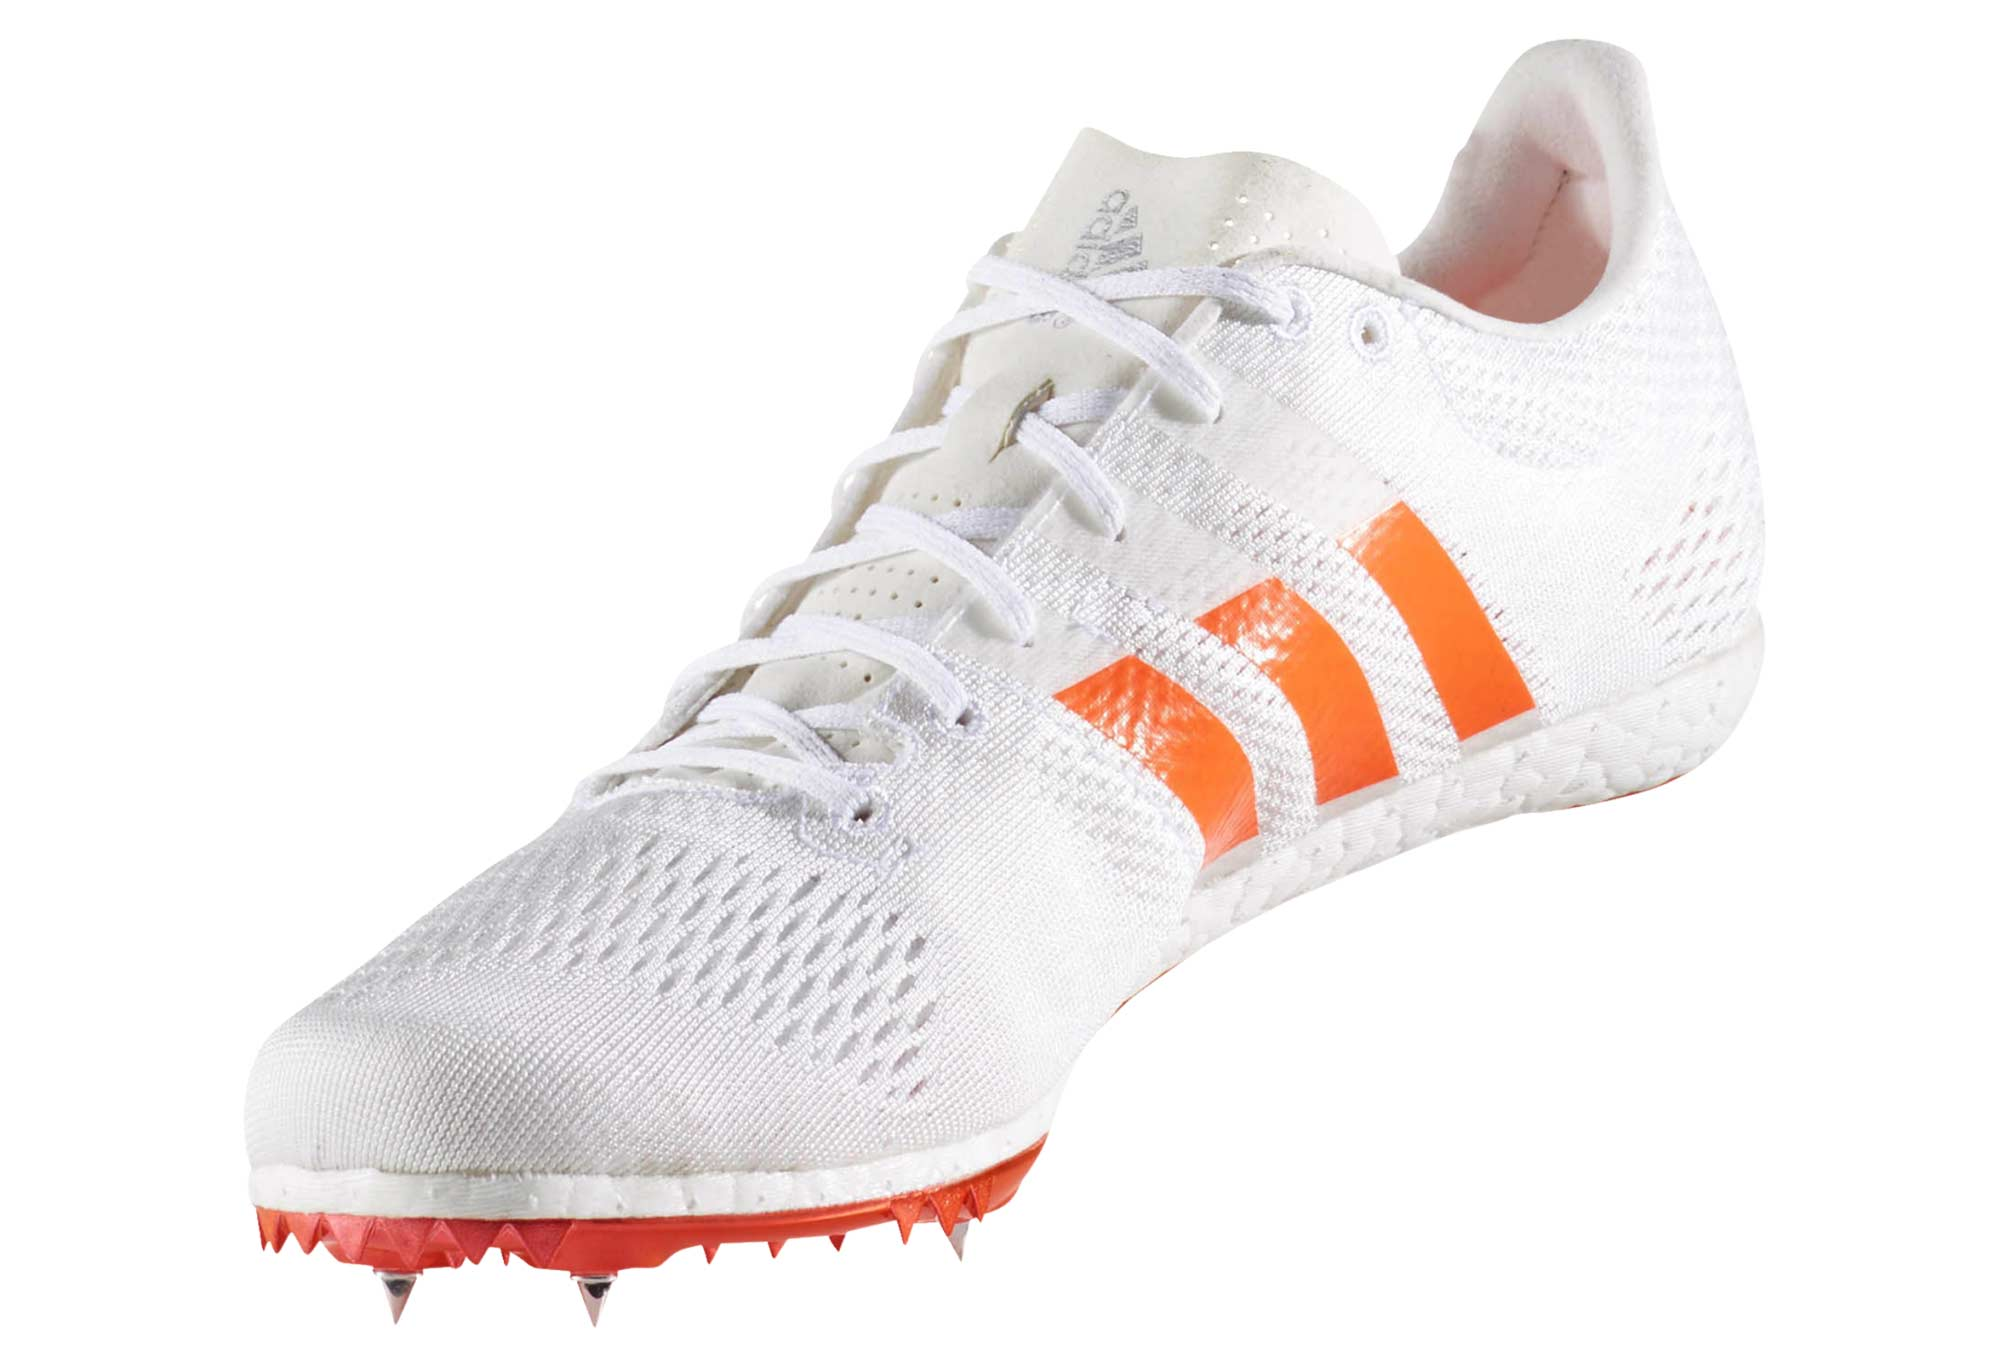 save off 63b1f 80762 Chaussures dAthlétisme adidas running Adizero Avanti Blanc  Orange